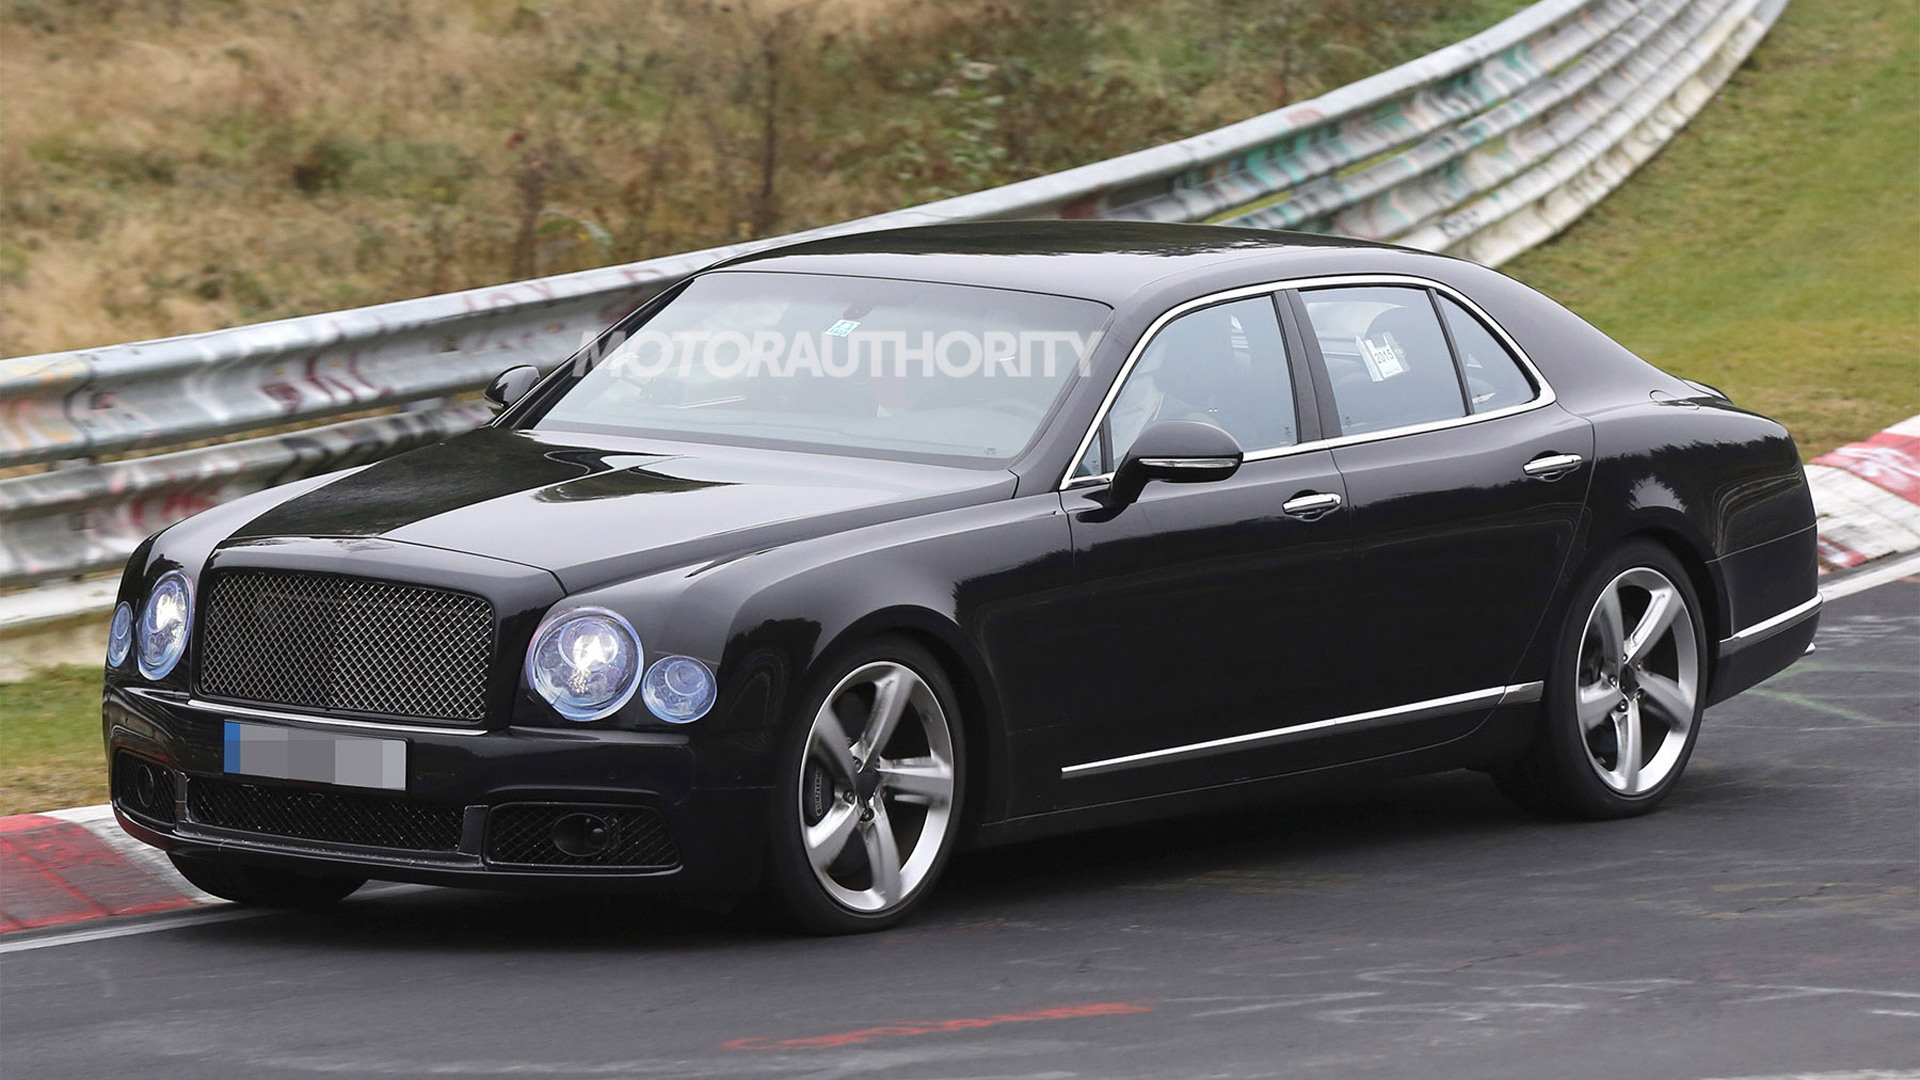 2017 Bentley Mulsanne facelift spy shots - Image via S. Baldauf/SB-Medien